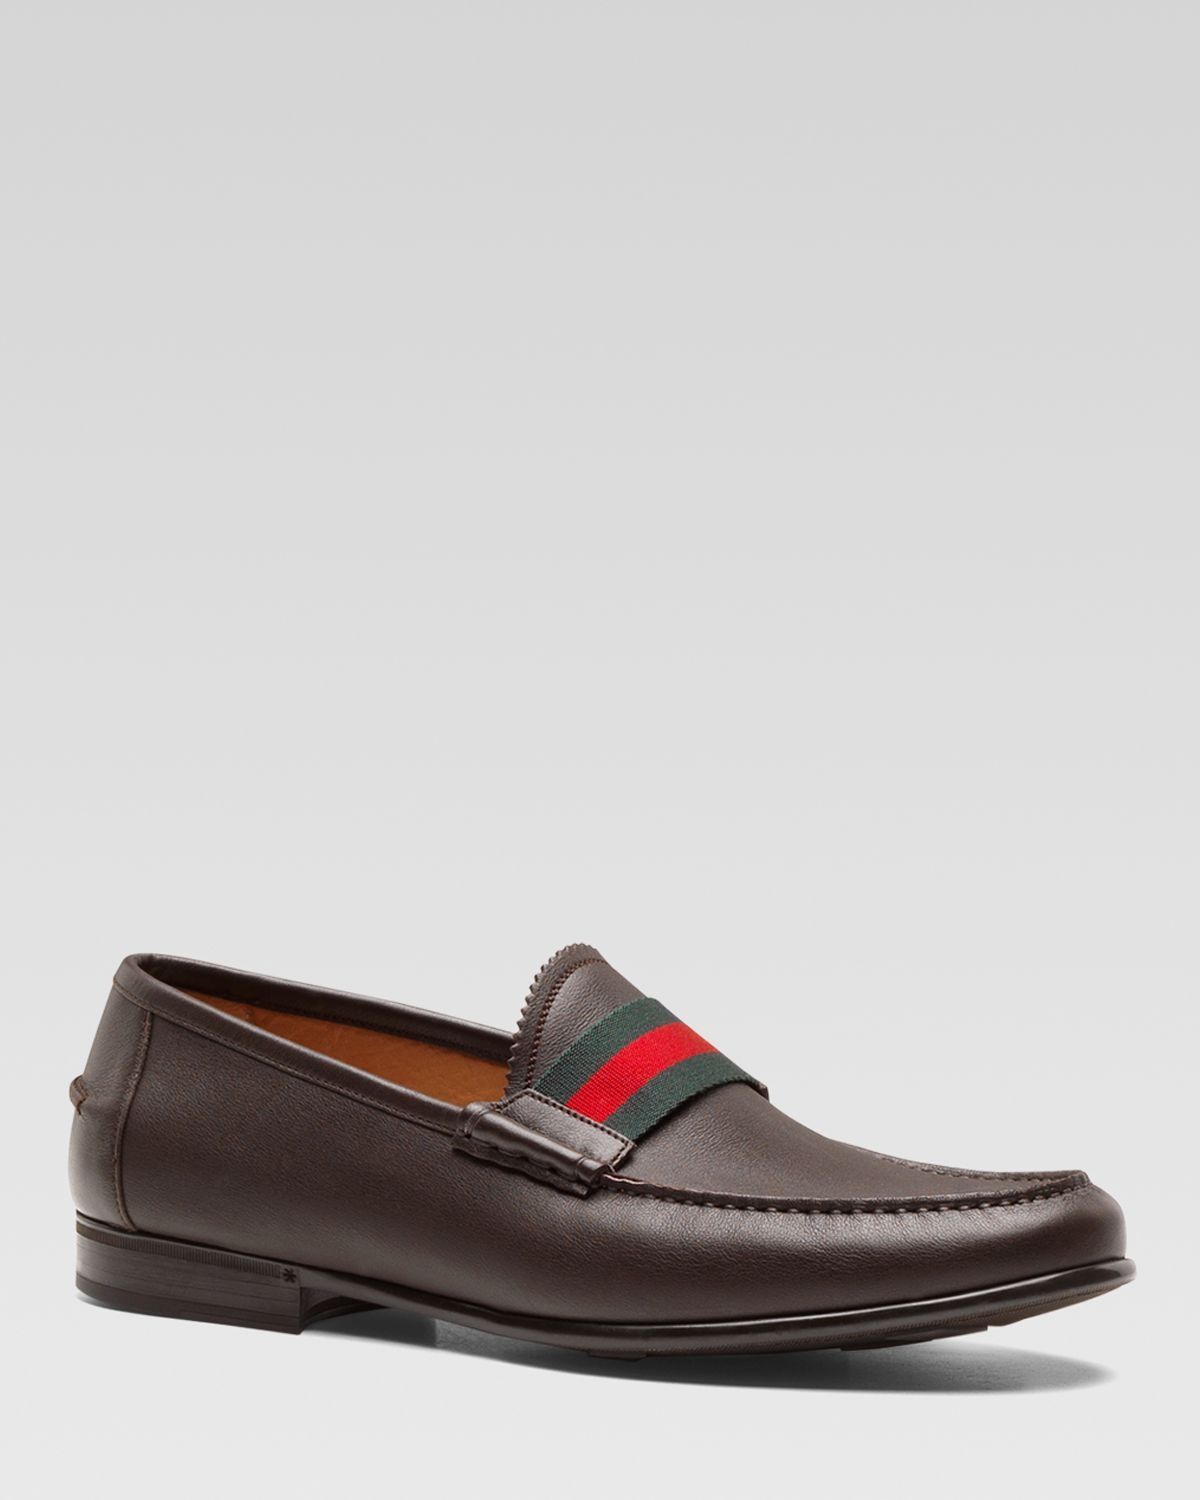 c72bd29ebc4 Lyst - Gucci Frederik Leather Loafers with Web in Brown for Men